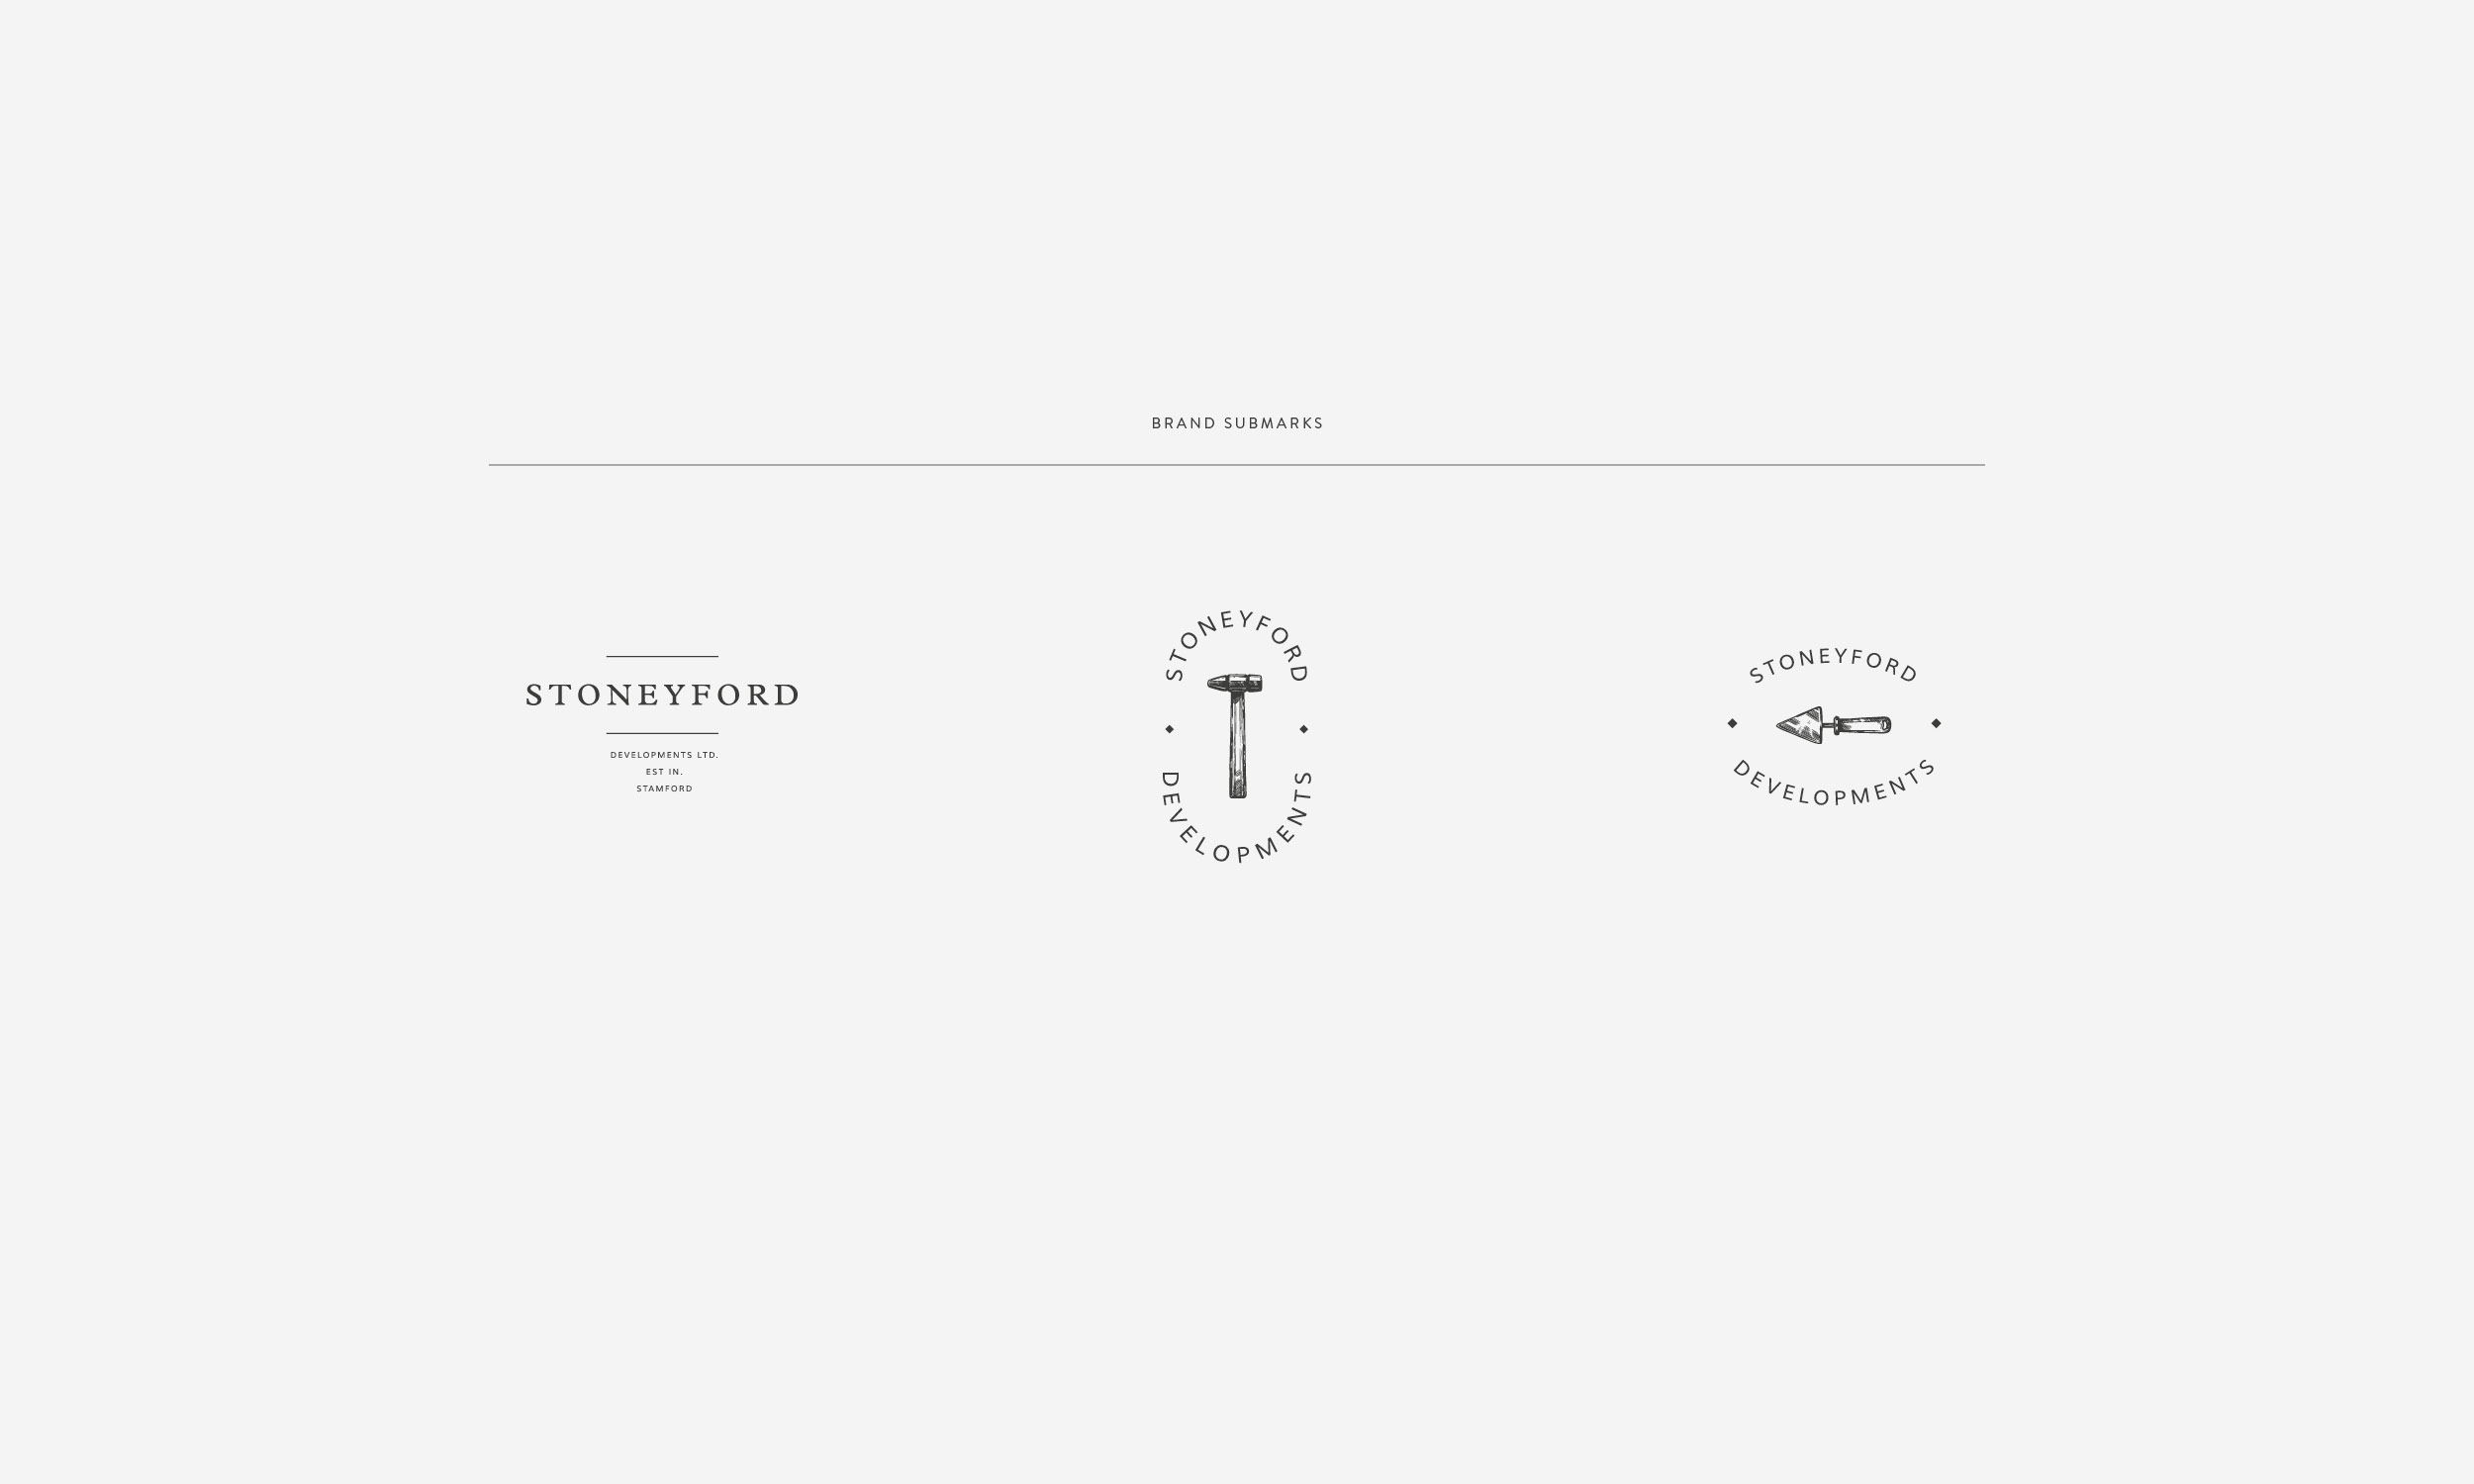 Stoneyford-Developments-Brand-Submarks.jpg